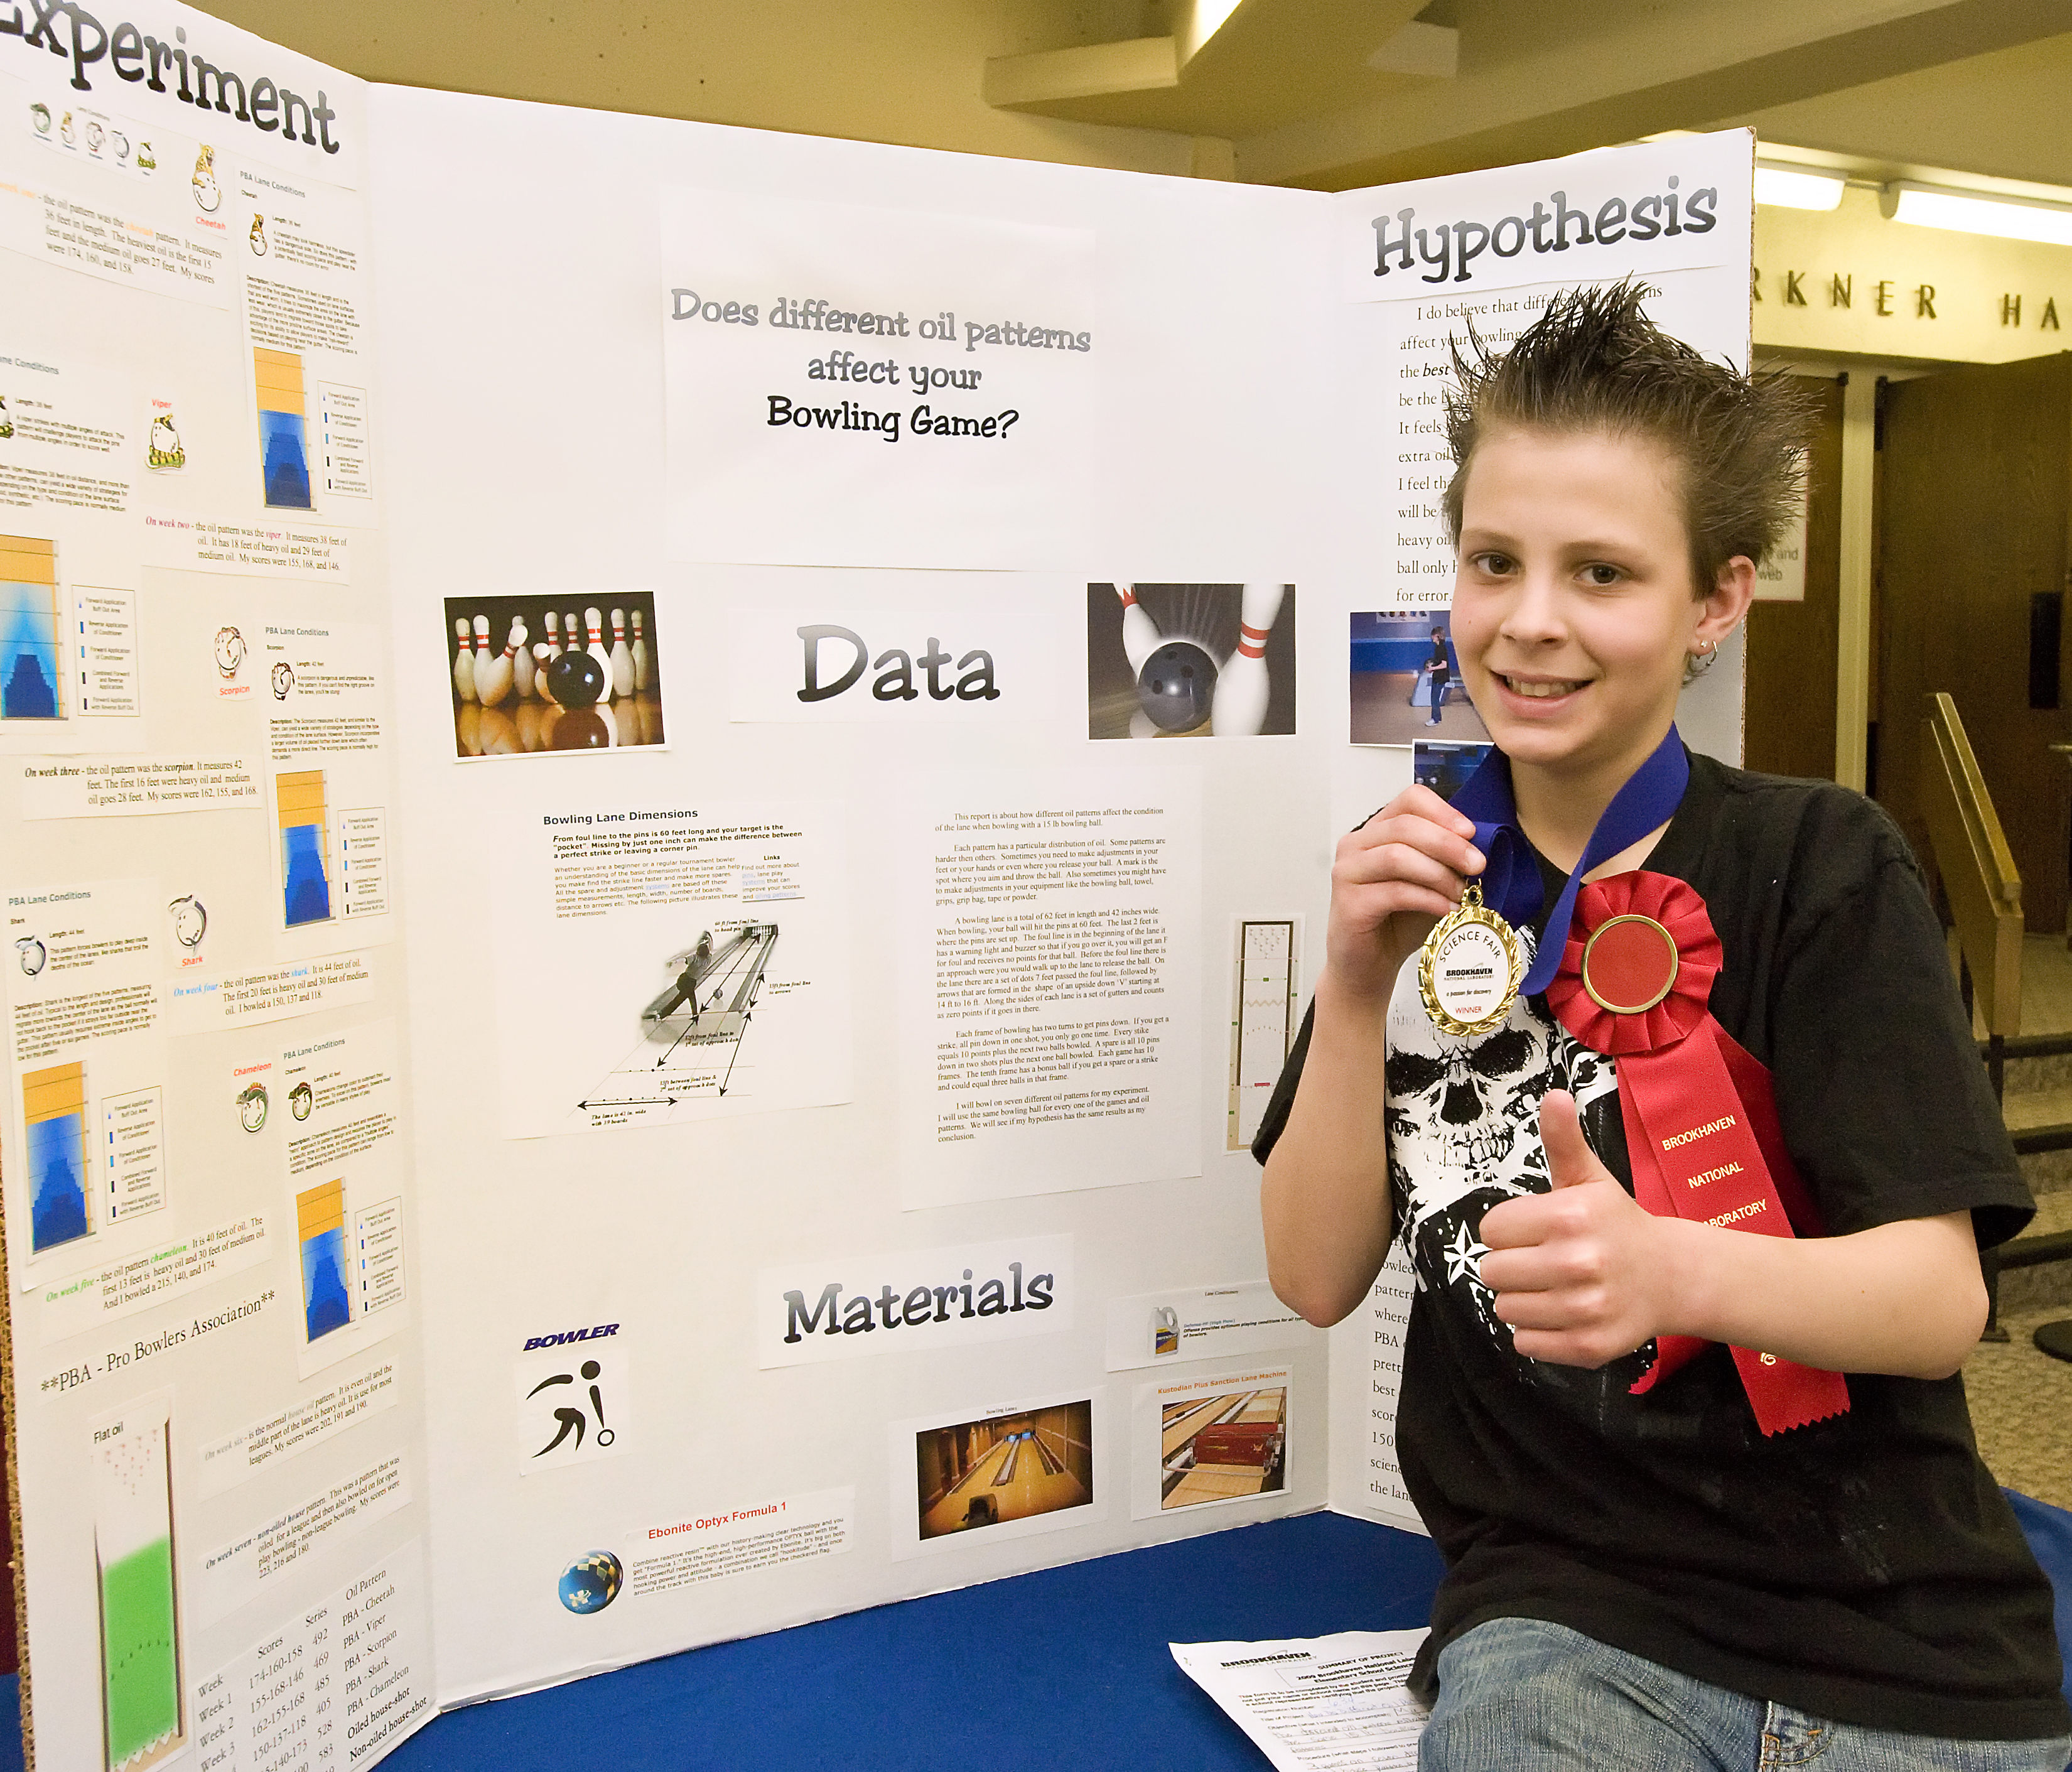 cool science fair projects for 6th grade Here are some fun science fair projects you can do in less than a  rainy-day  activities with your kids, even if there isn't a science fair in sight.